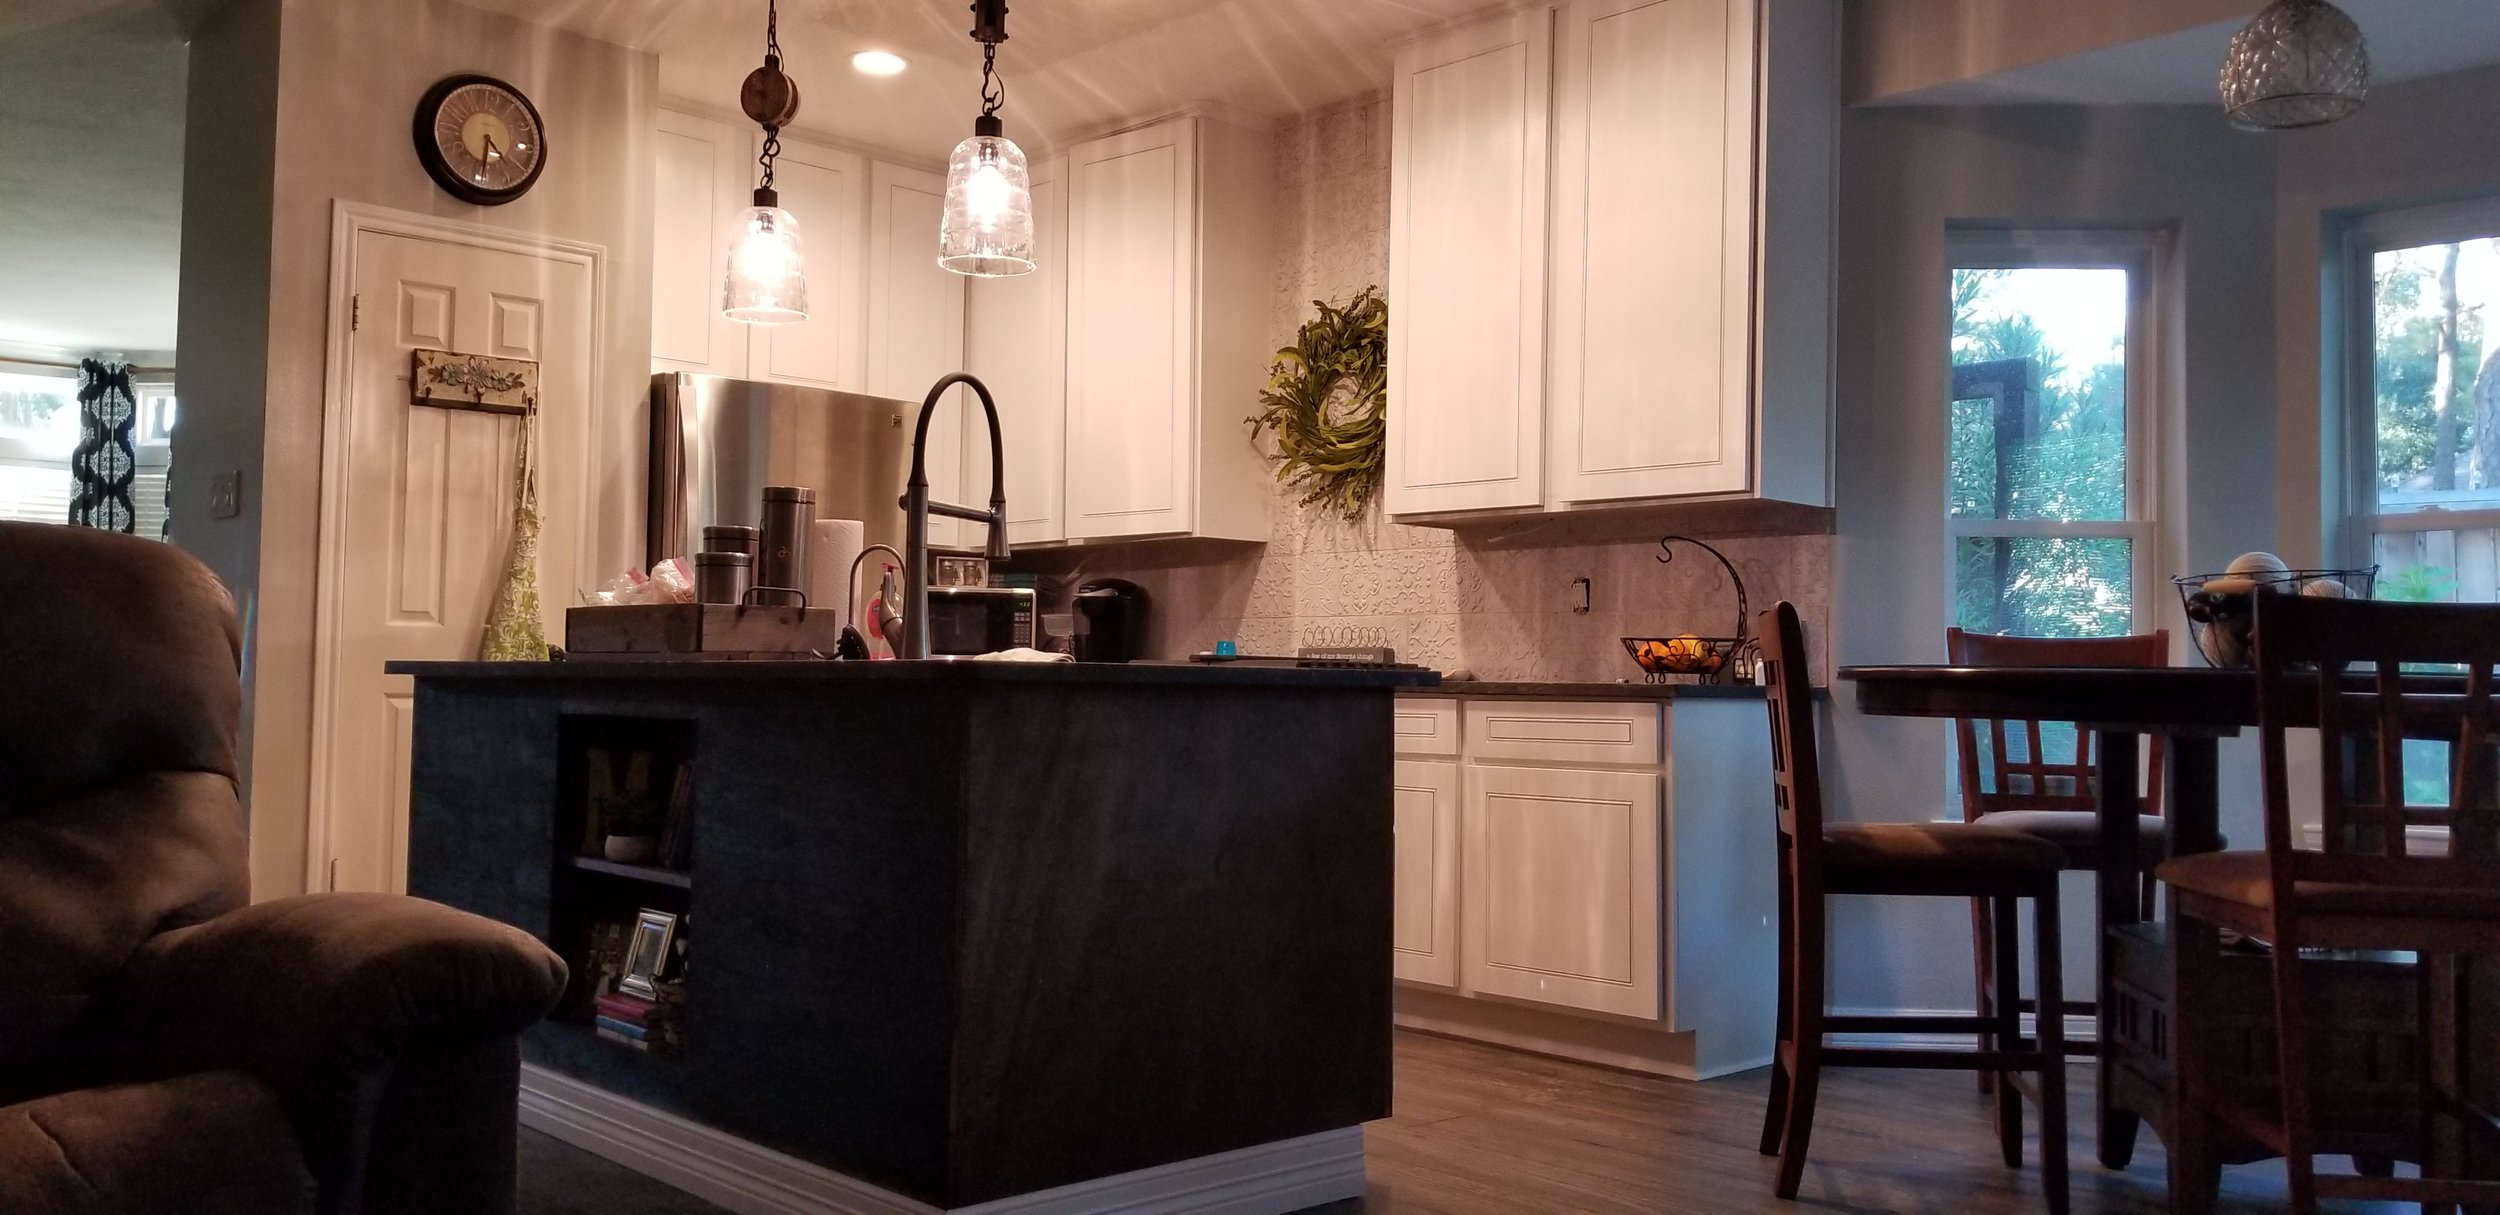 Ceiling height kitchen cabinet remodel